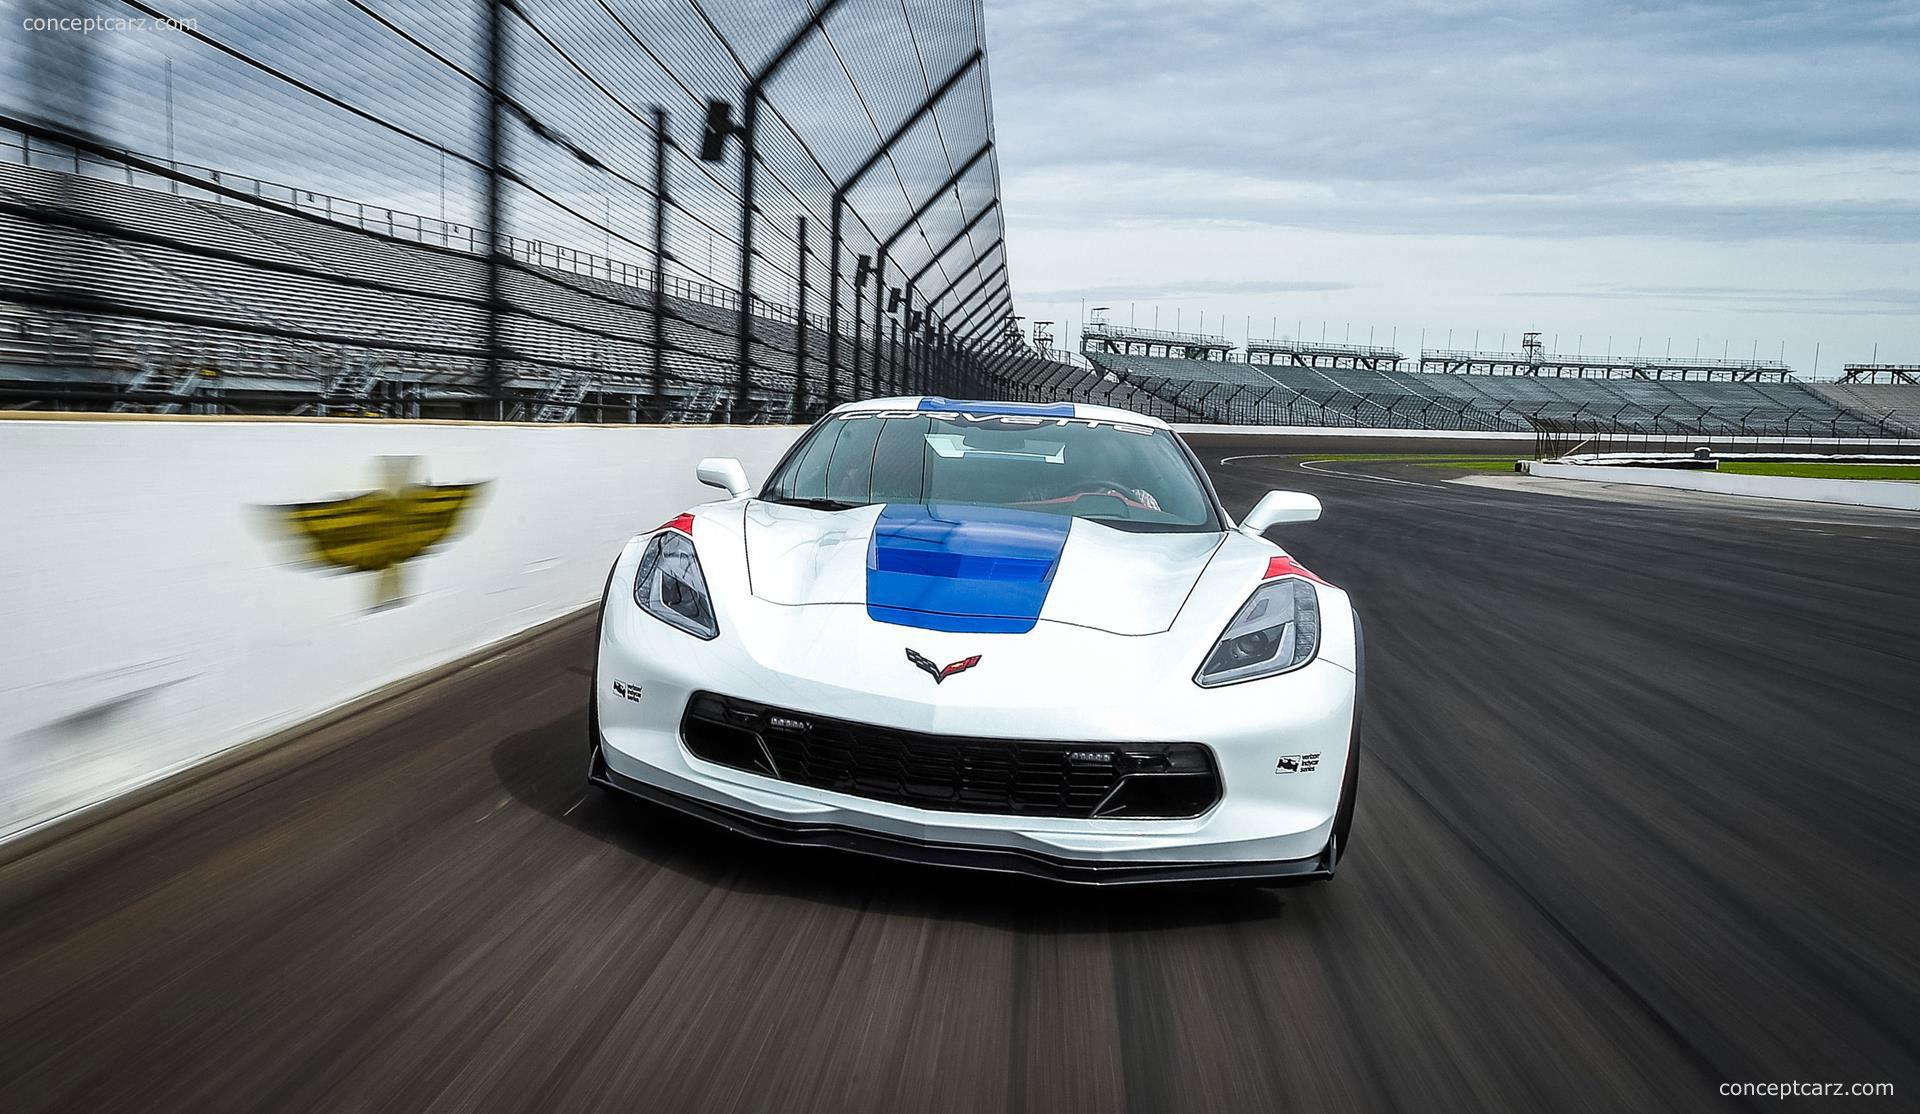 2017 Chevrolet Corvette Grand Sport Indy 500 Pace Car News And Information